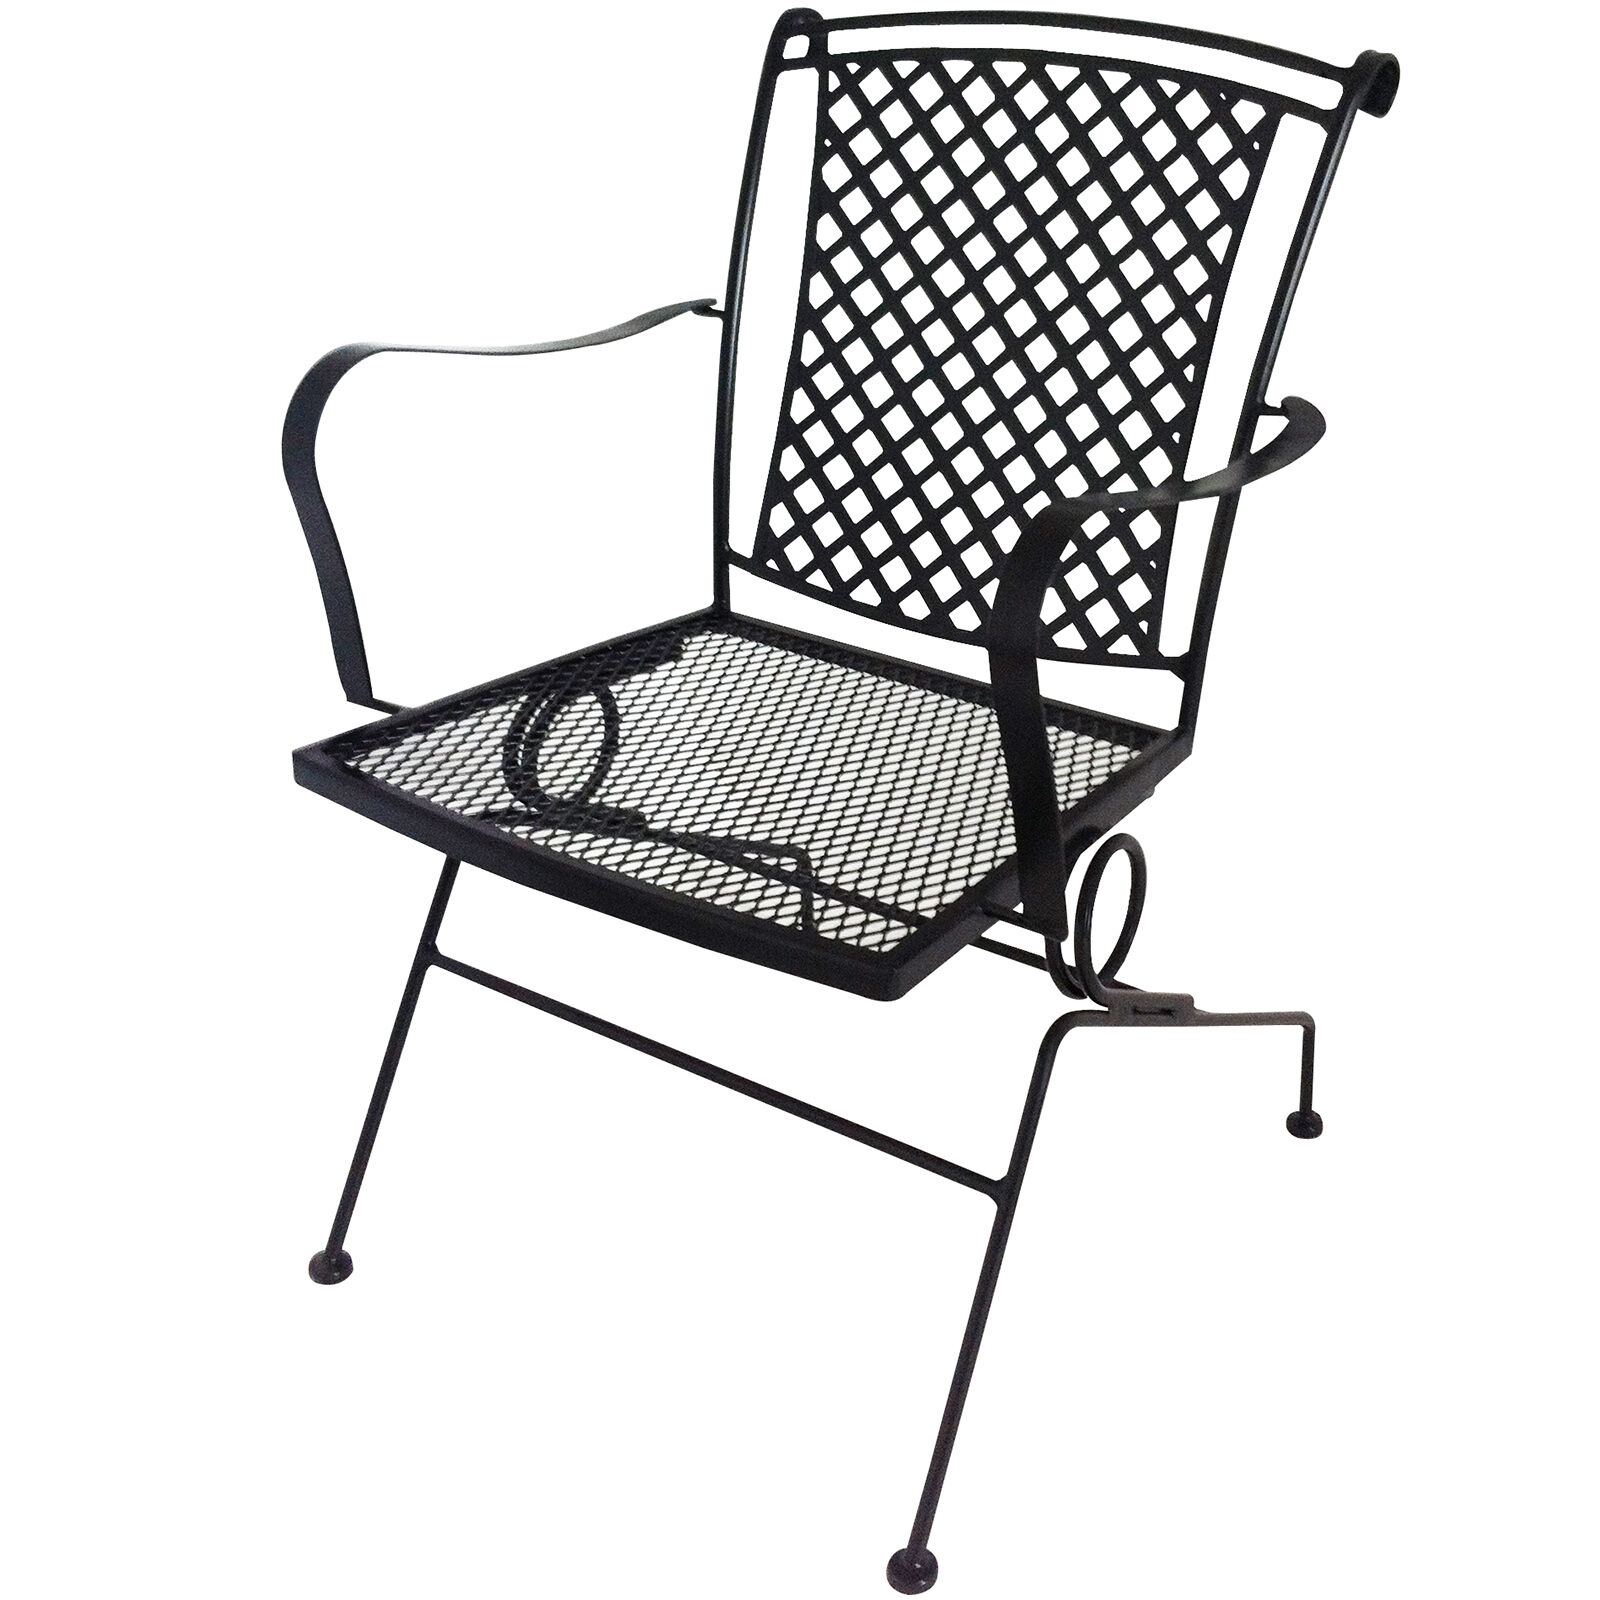 Spring Chair Wrought Iron Lattice Back Spring Chair Black